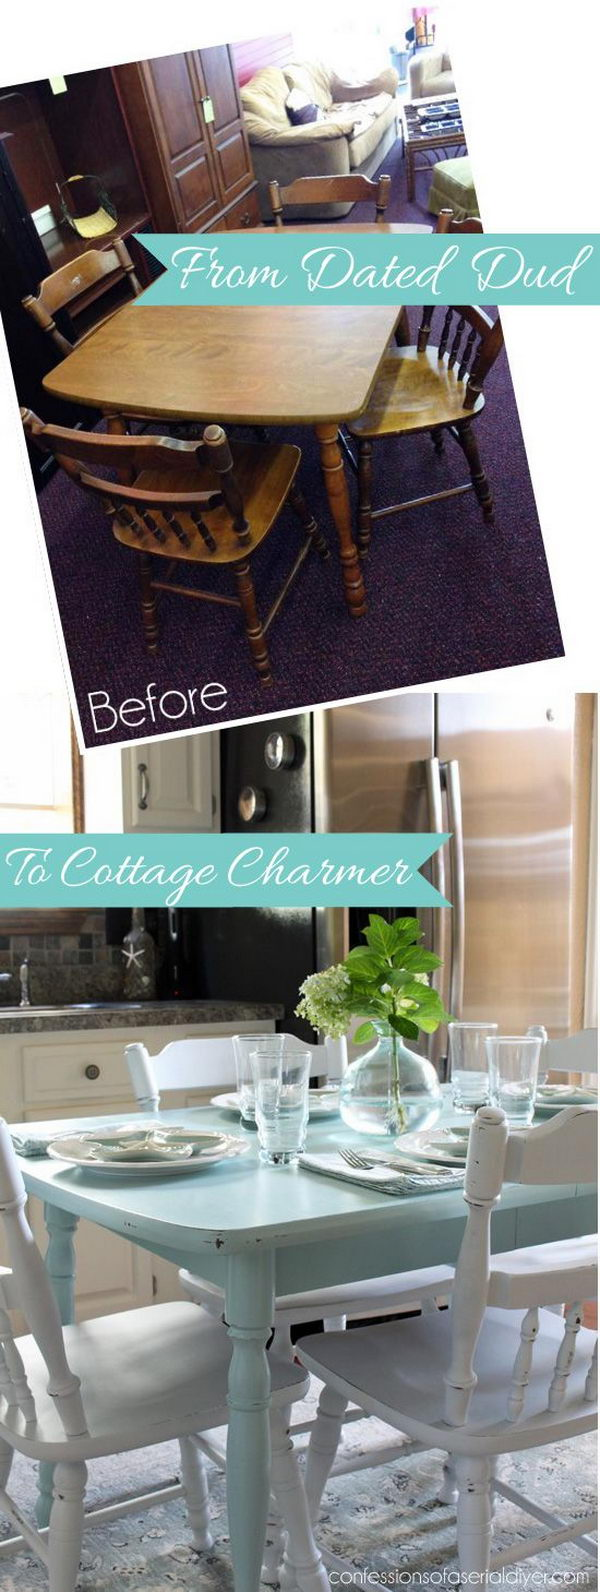 diy shabby chic furniture ideas tutorials painting kitchen table Shabby Chic Makeover How to Paint a Laminate Kitchen Table